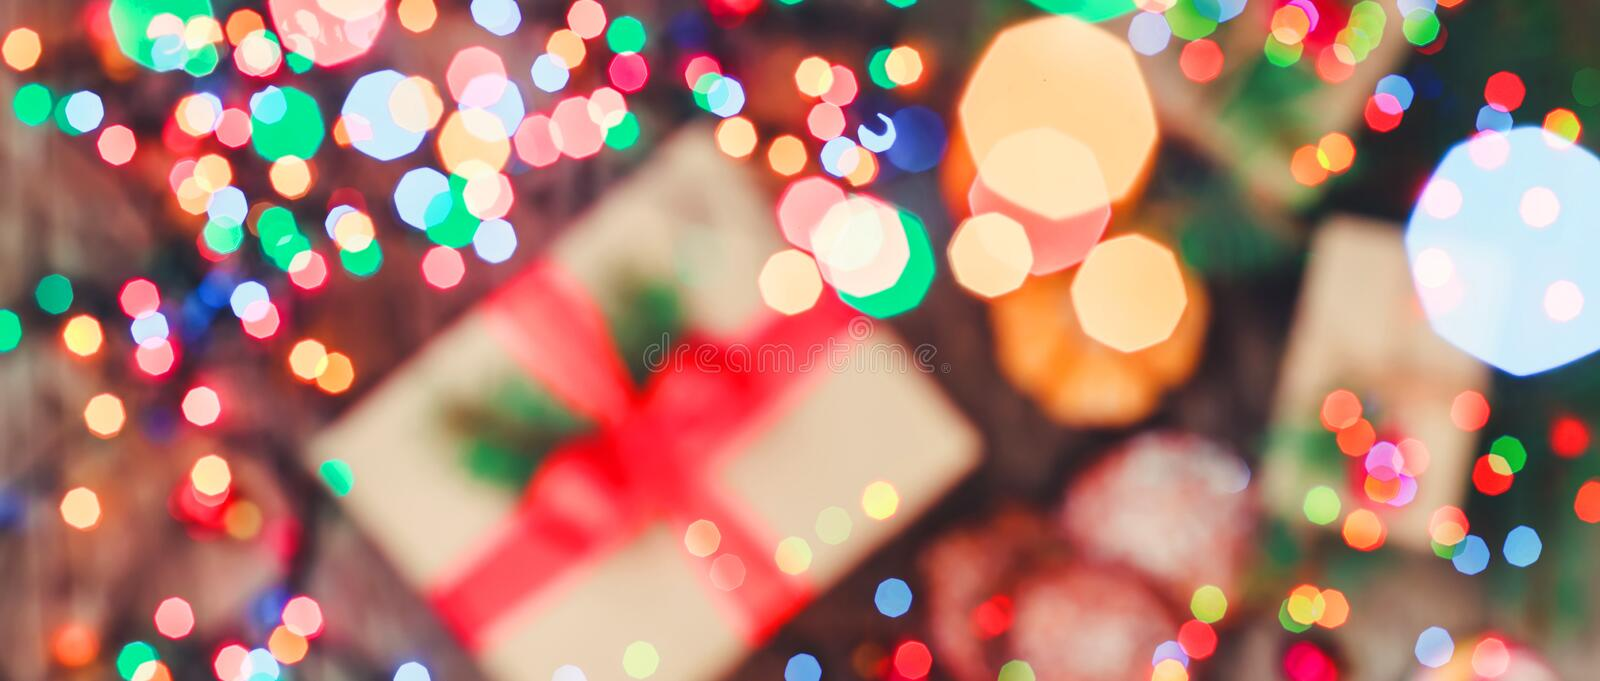 Christmas card. Christmas Cookies Chocolate, gifts, tangerines, candy on blur light background. Xmas and Happy New Year compositio stock image